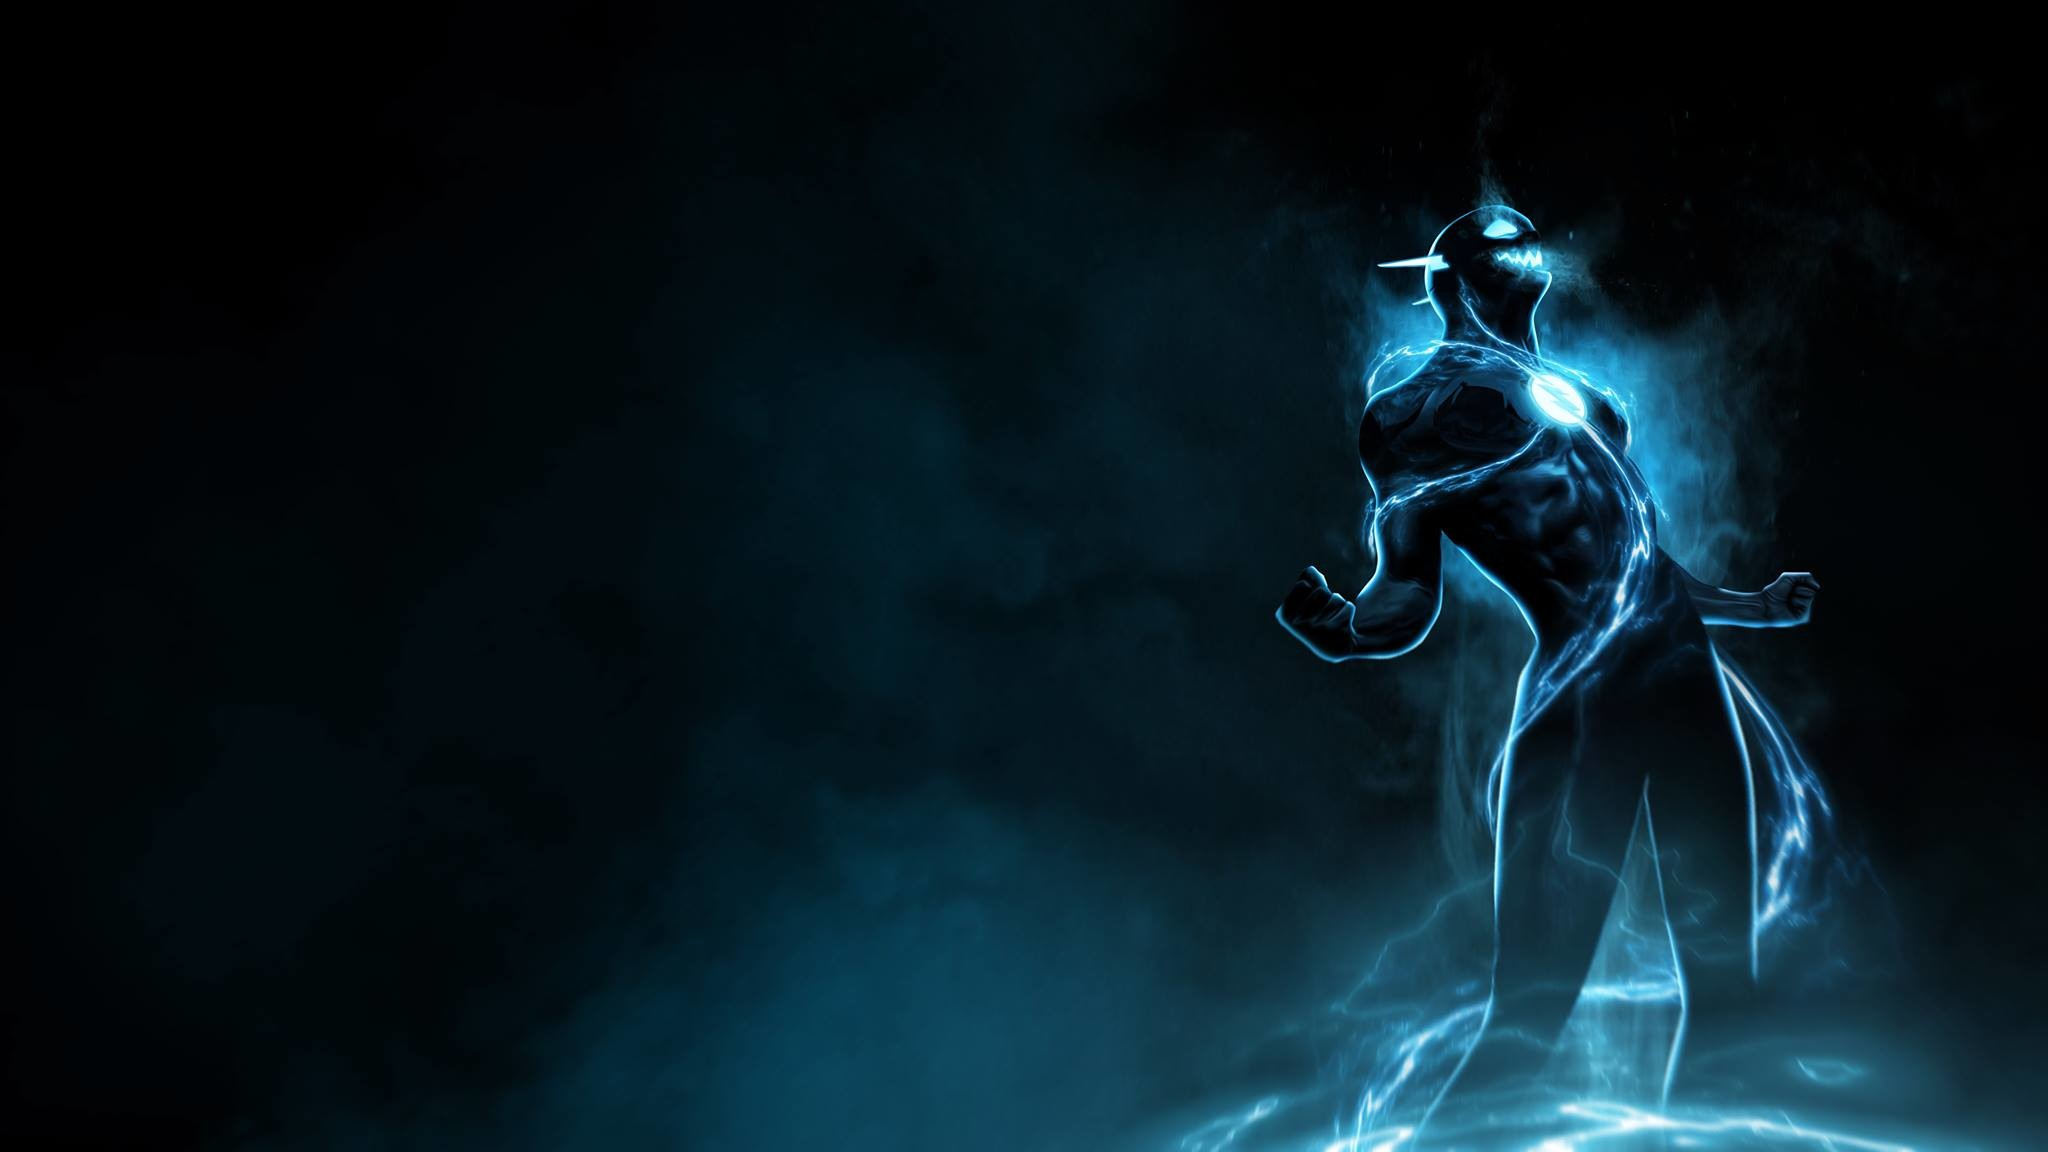 Justice League Hd Wallpaper The Flash Zoom Wallpaper 75 Images